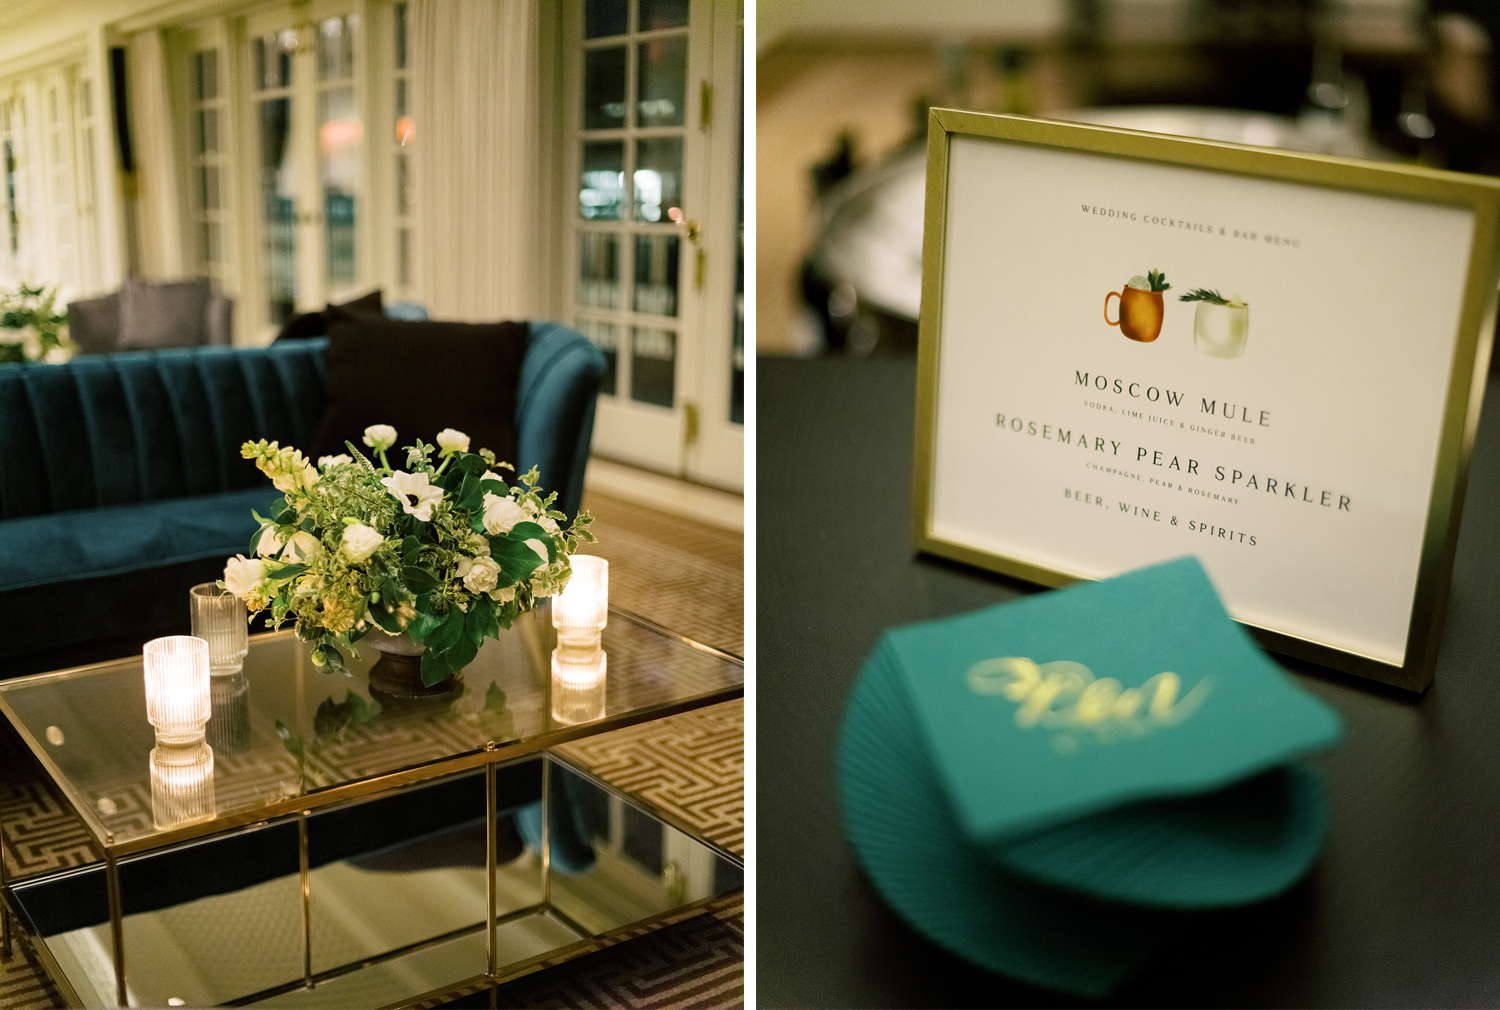 Details of the lounge area at the rooftop of the Hay Adams Hotel